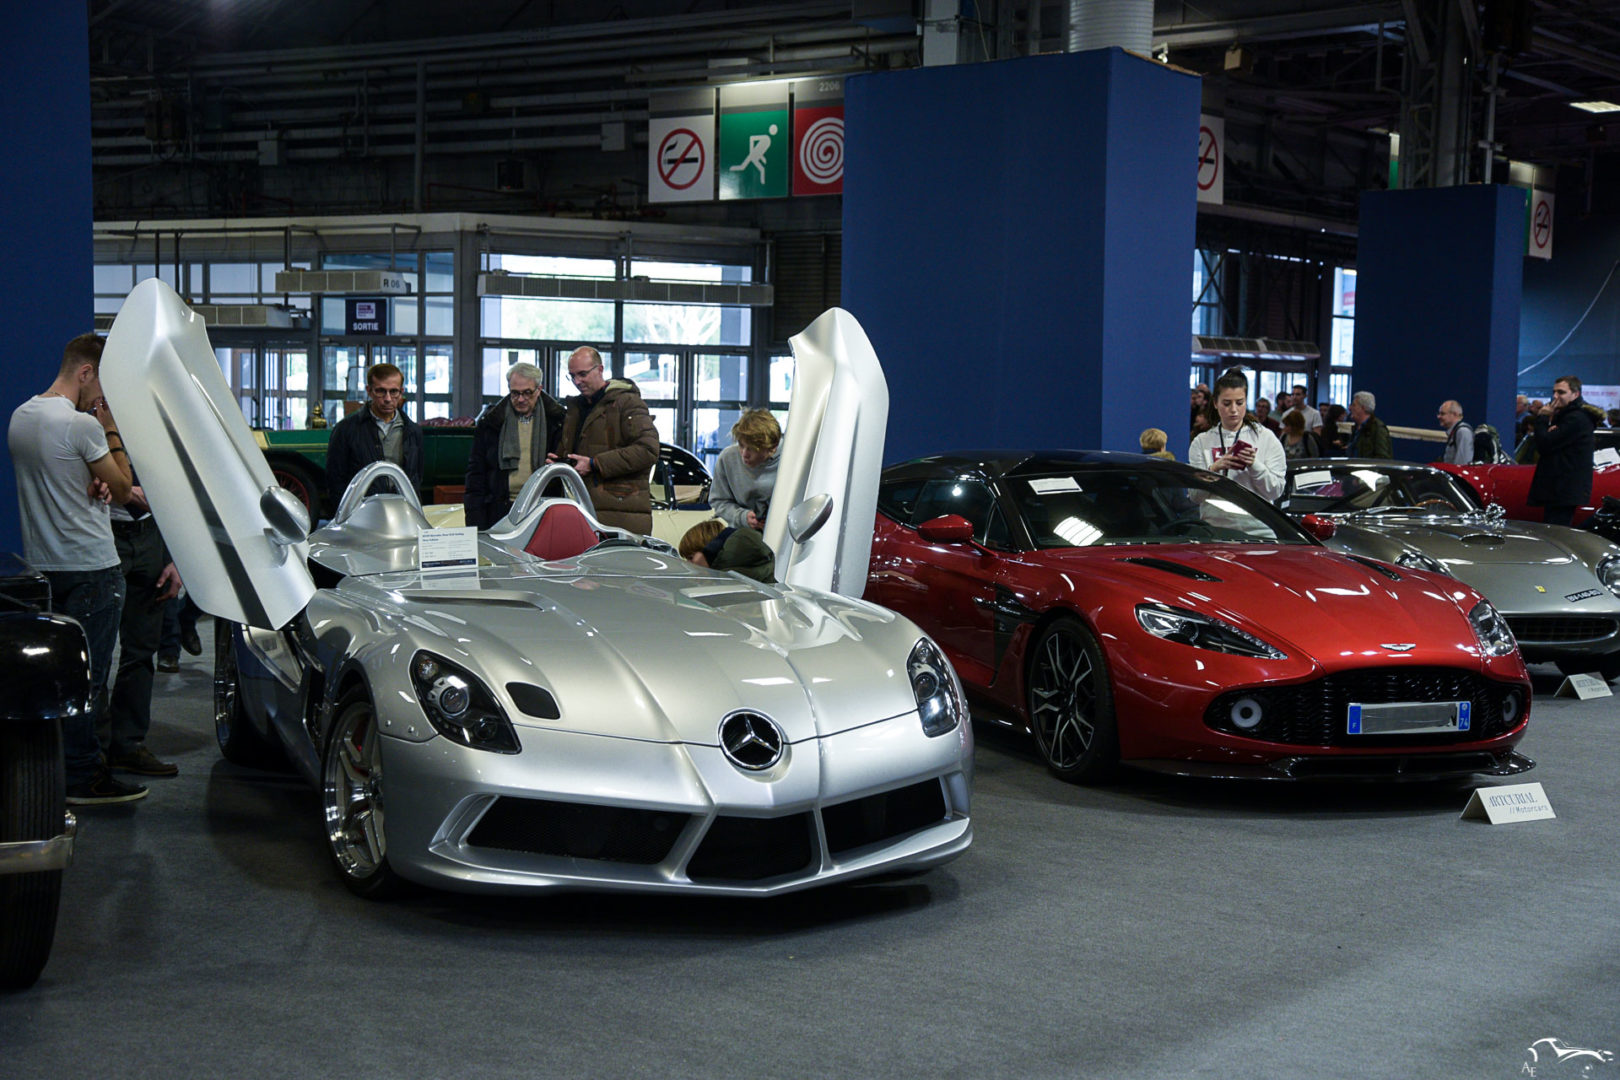 Mercedes Benz SLR Stirling Moss & Aston Martin Vanquish Zagato Shooting Brake